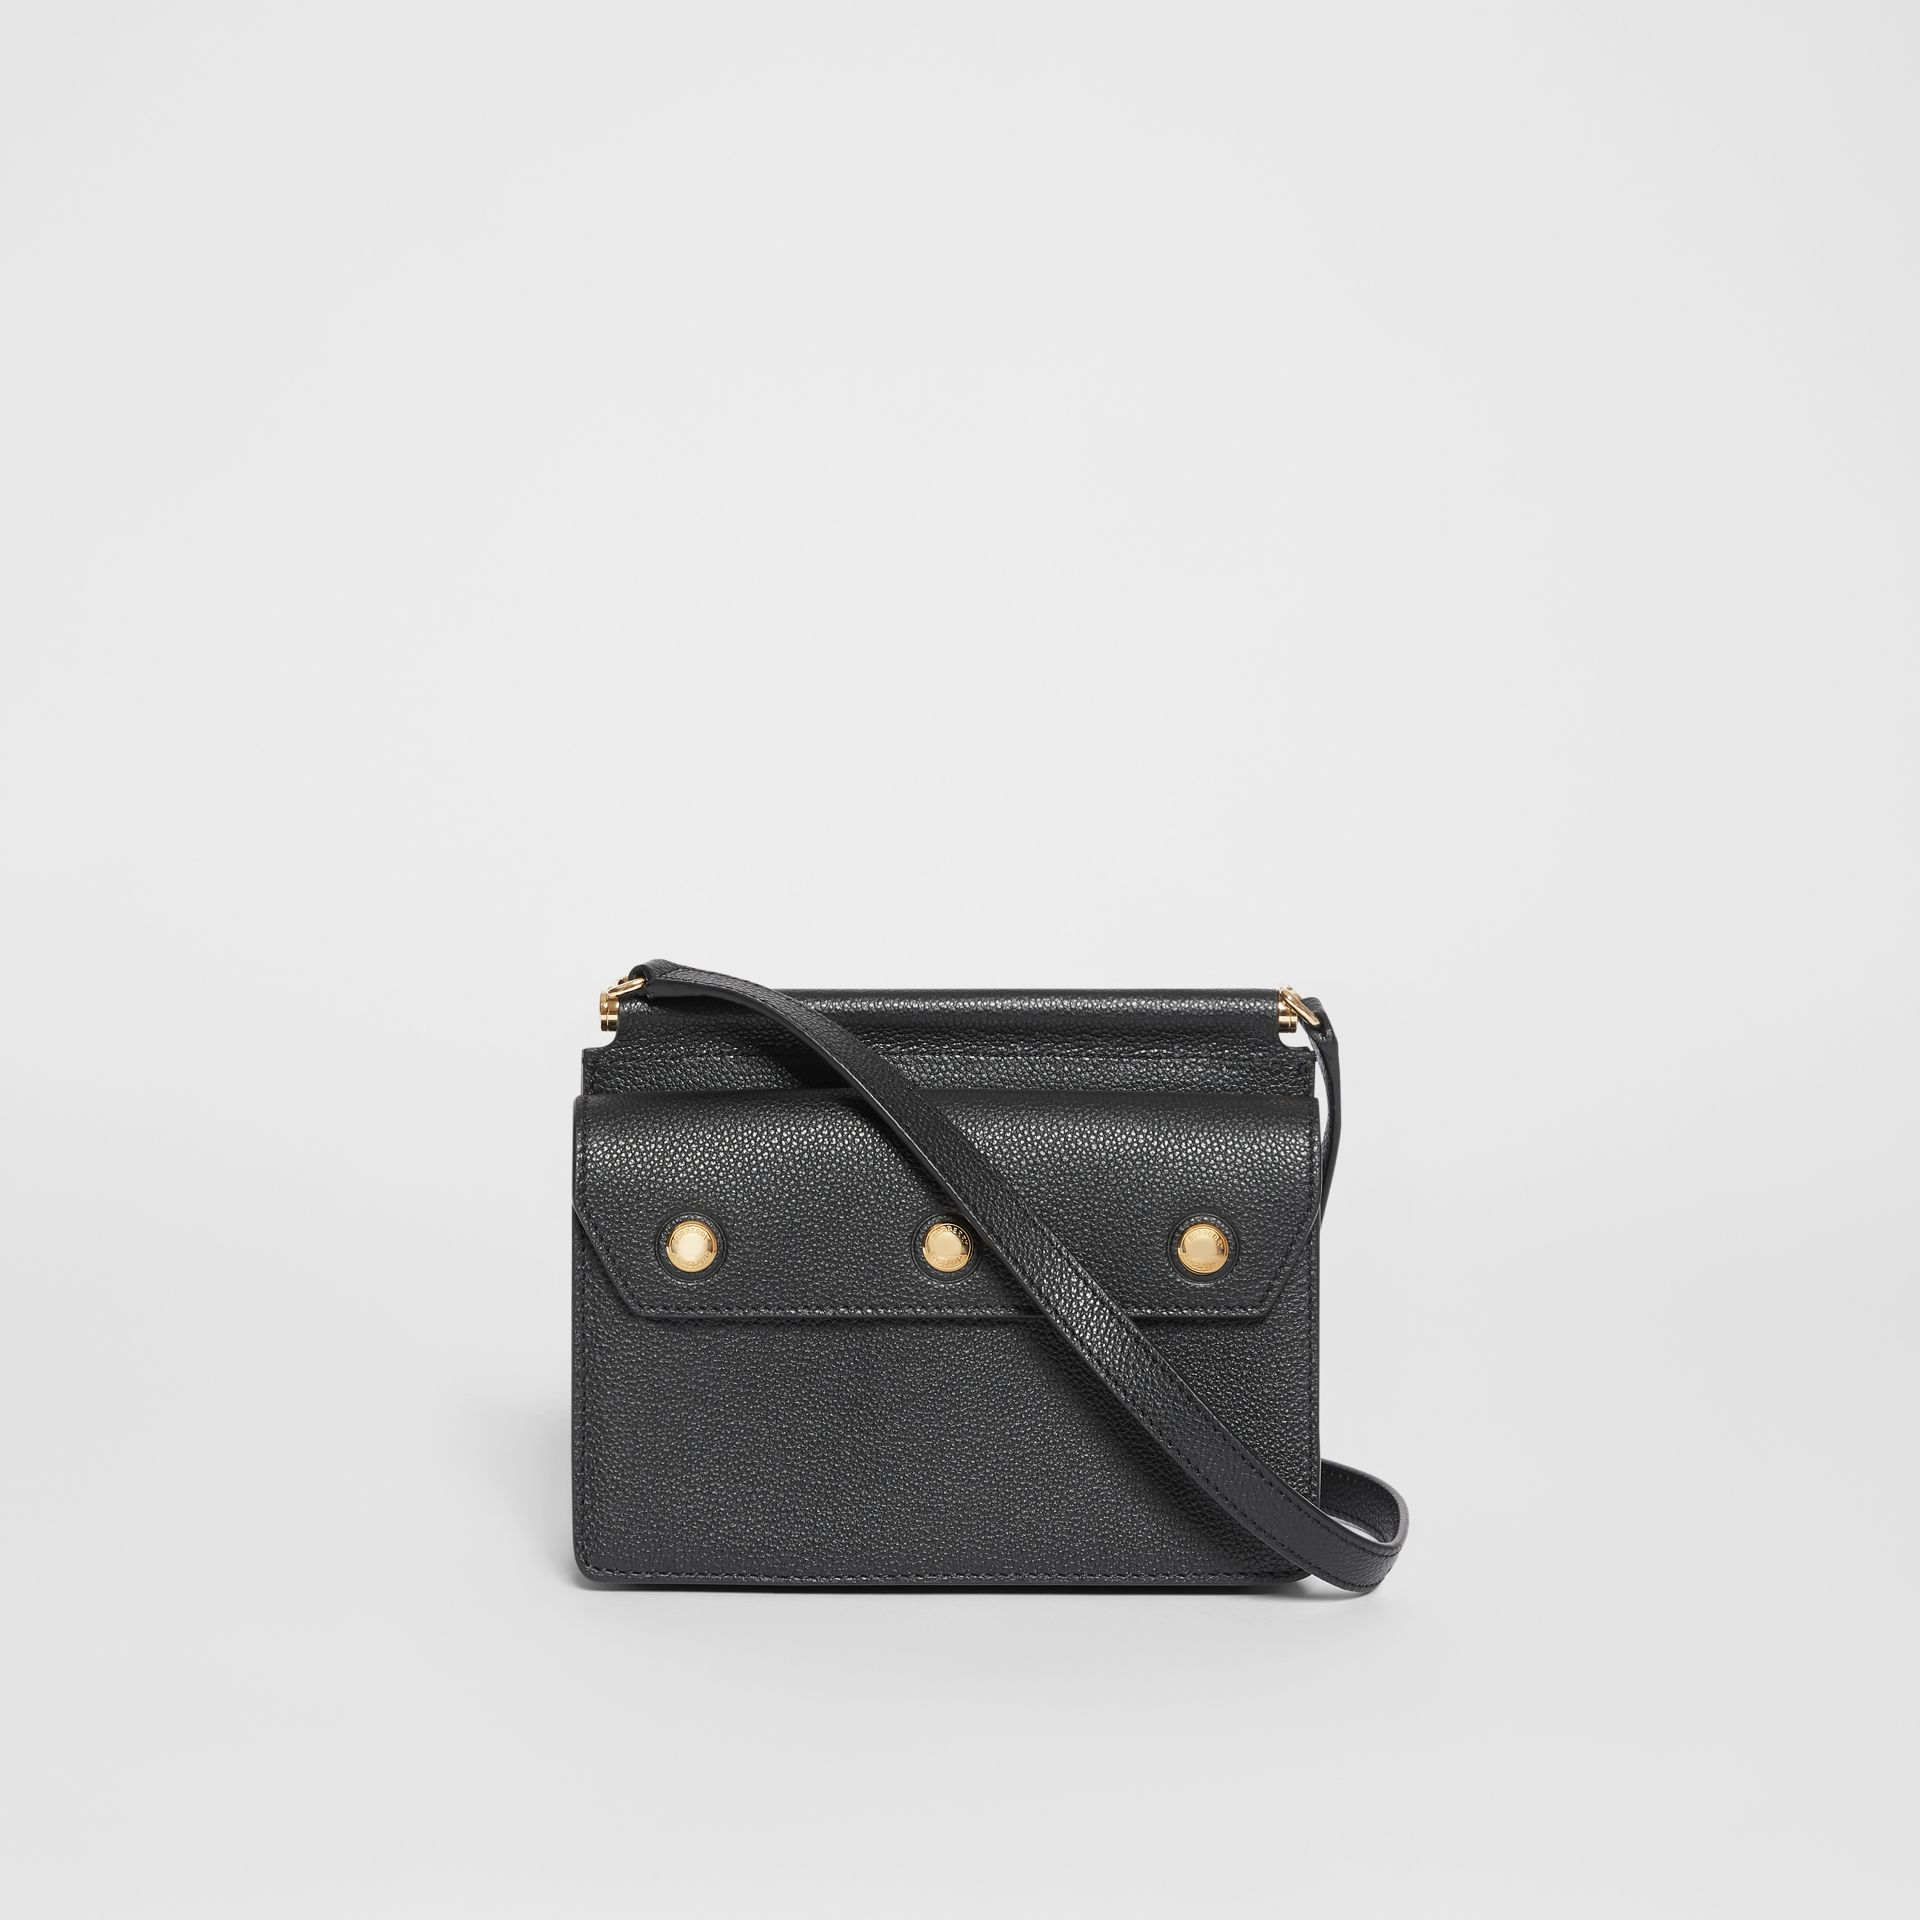 Mini Leather Title Bag in Black - Women | Burberry - gallery image 7